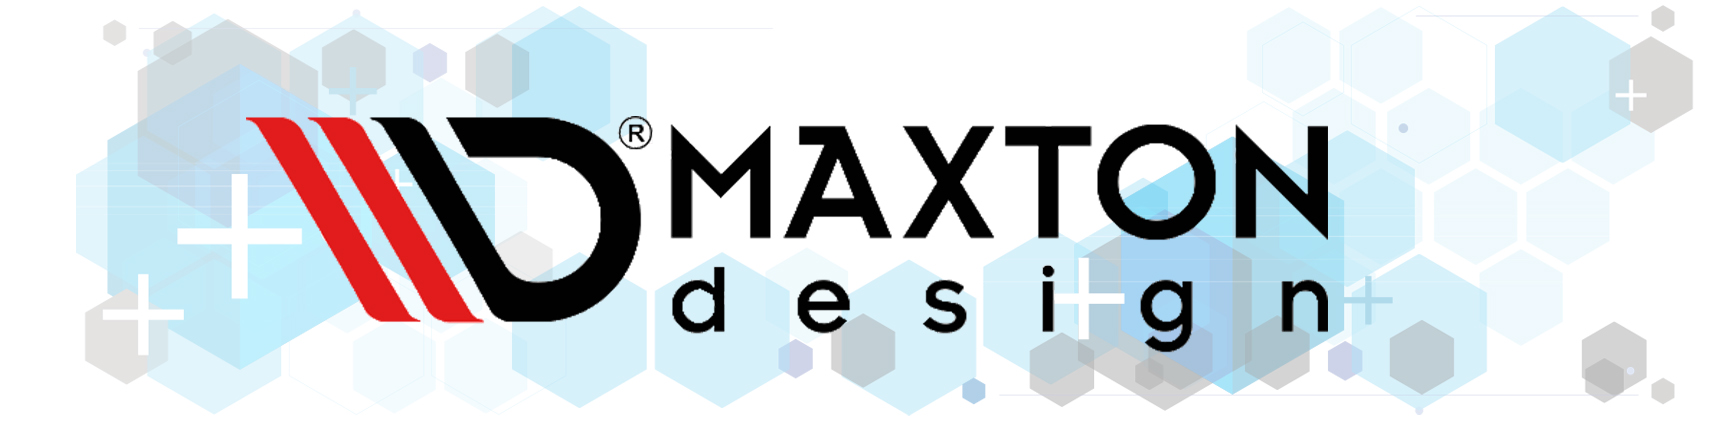 MAXTON DESIGN - Splitters, Spoilers & Extensions